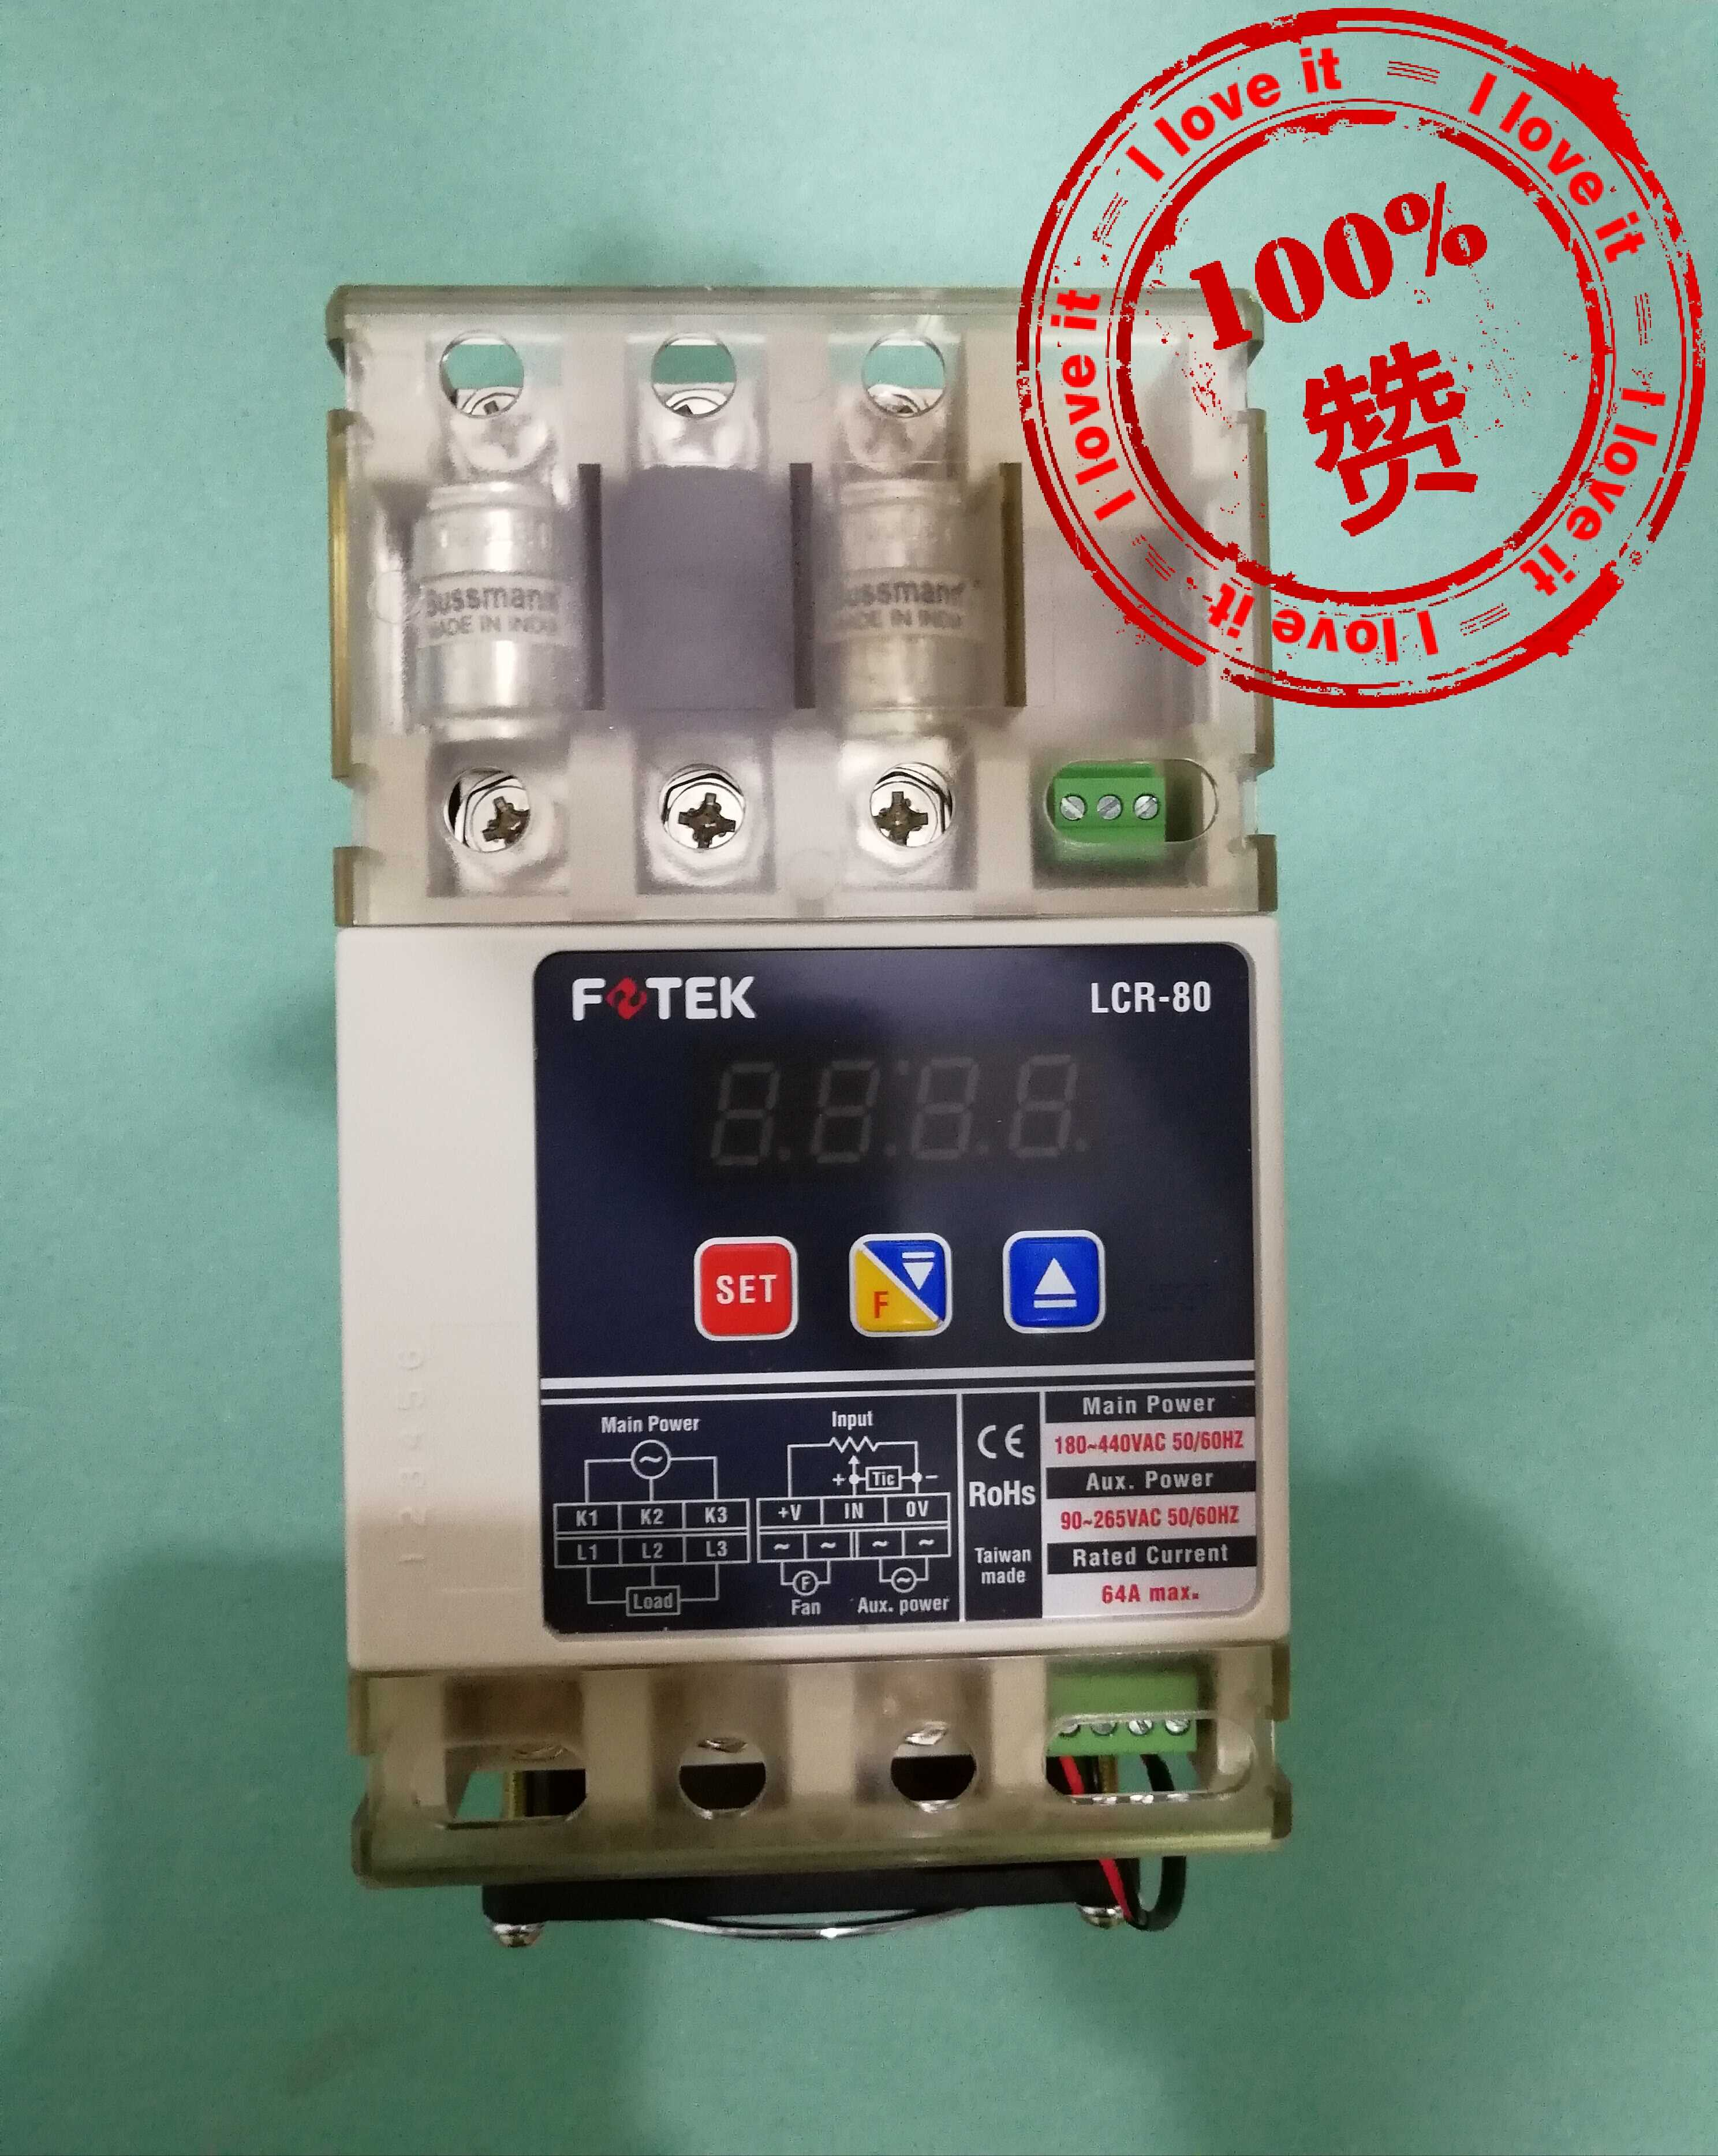 A New Imported Icr-80 Three-phase Solid State Relay LCR-80A New Imported Icr-80 Three-phase Solid State Relay LCR-80